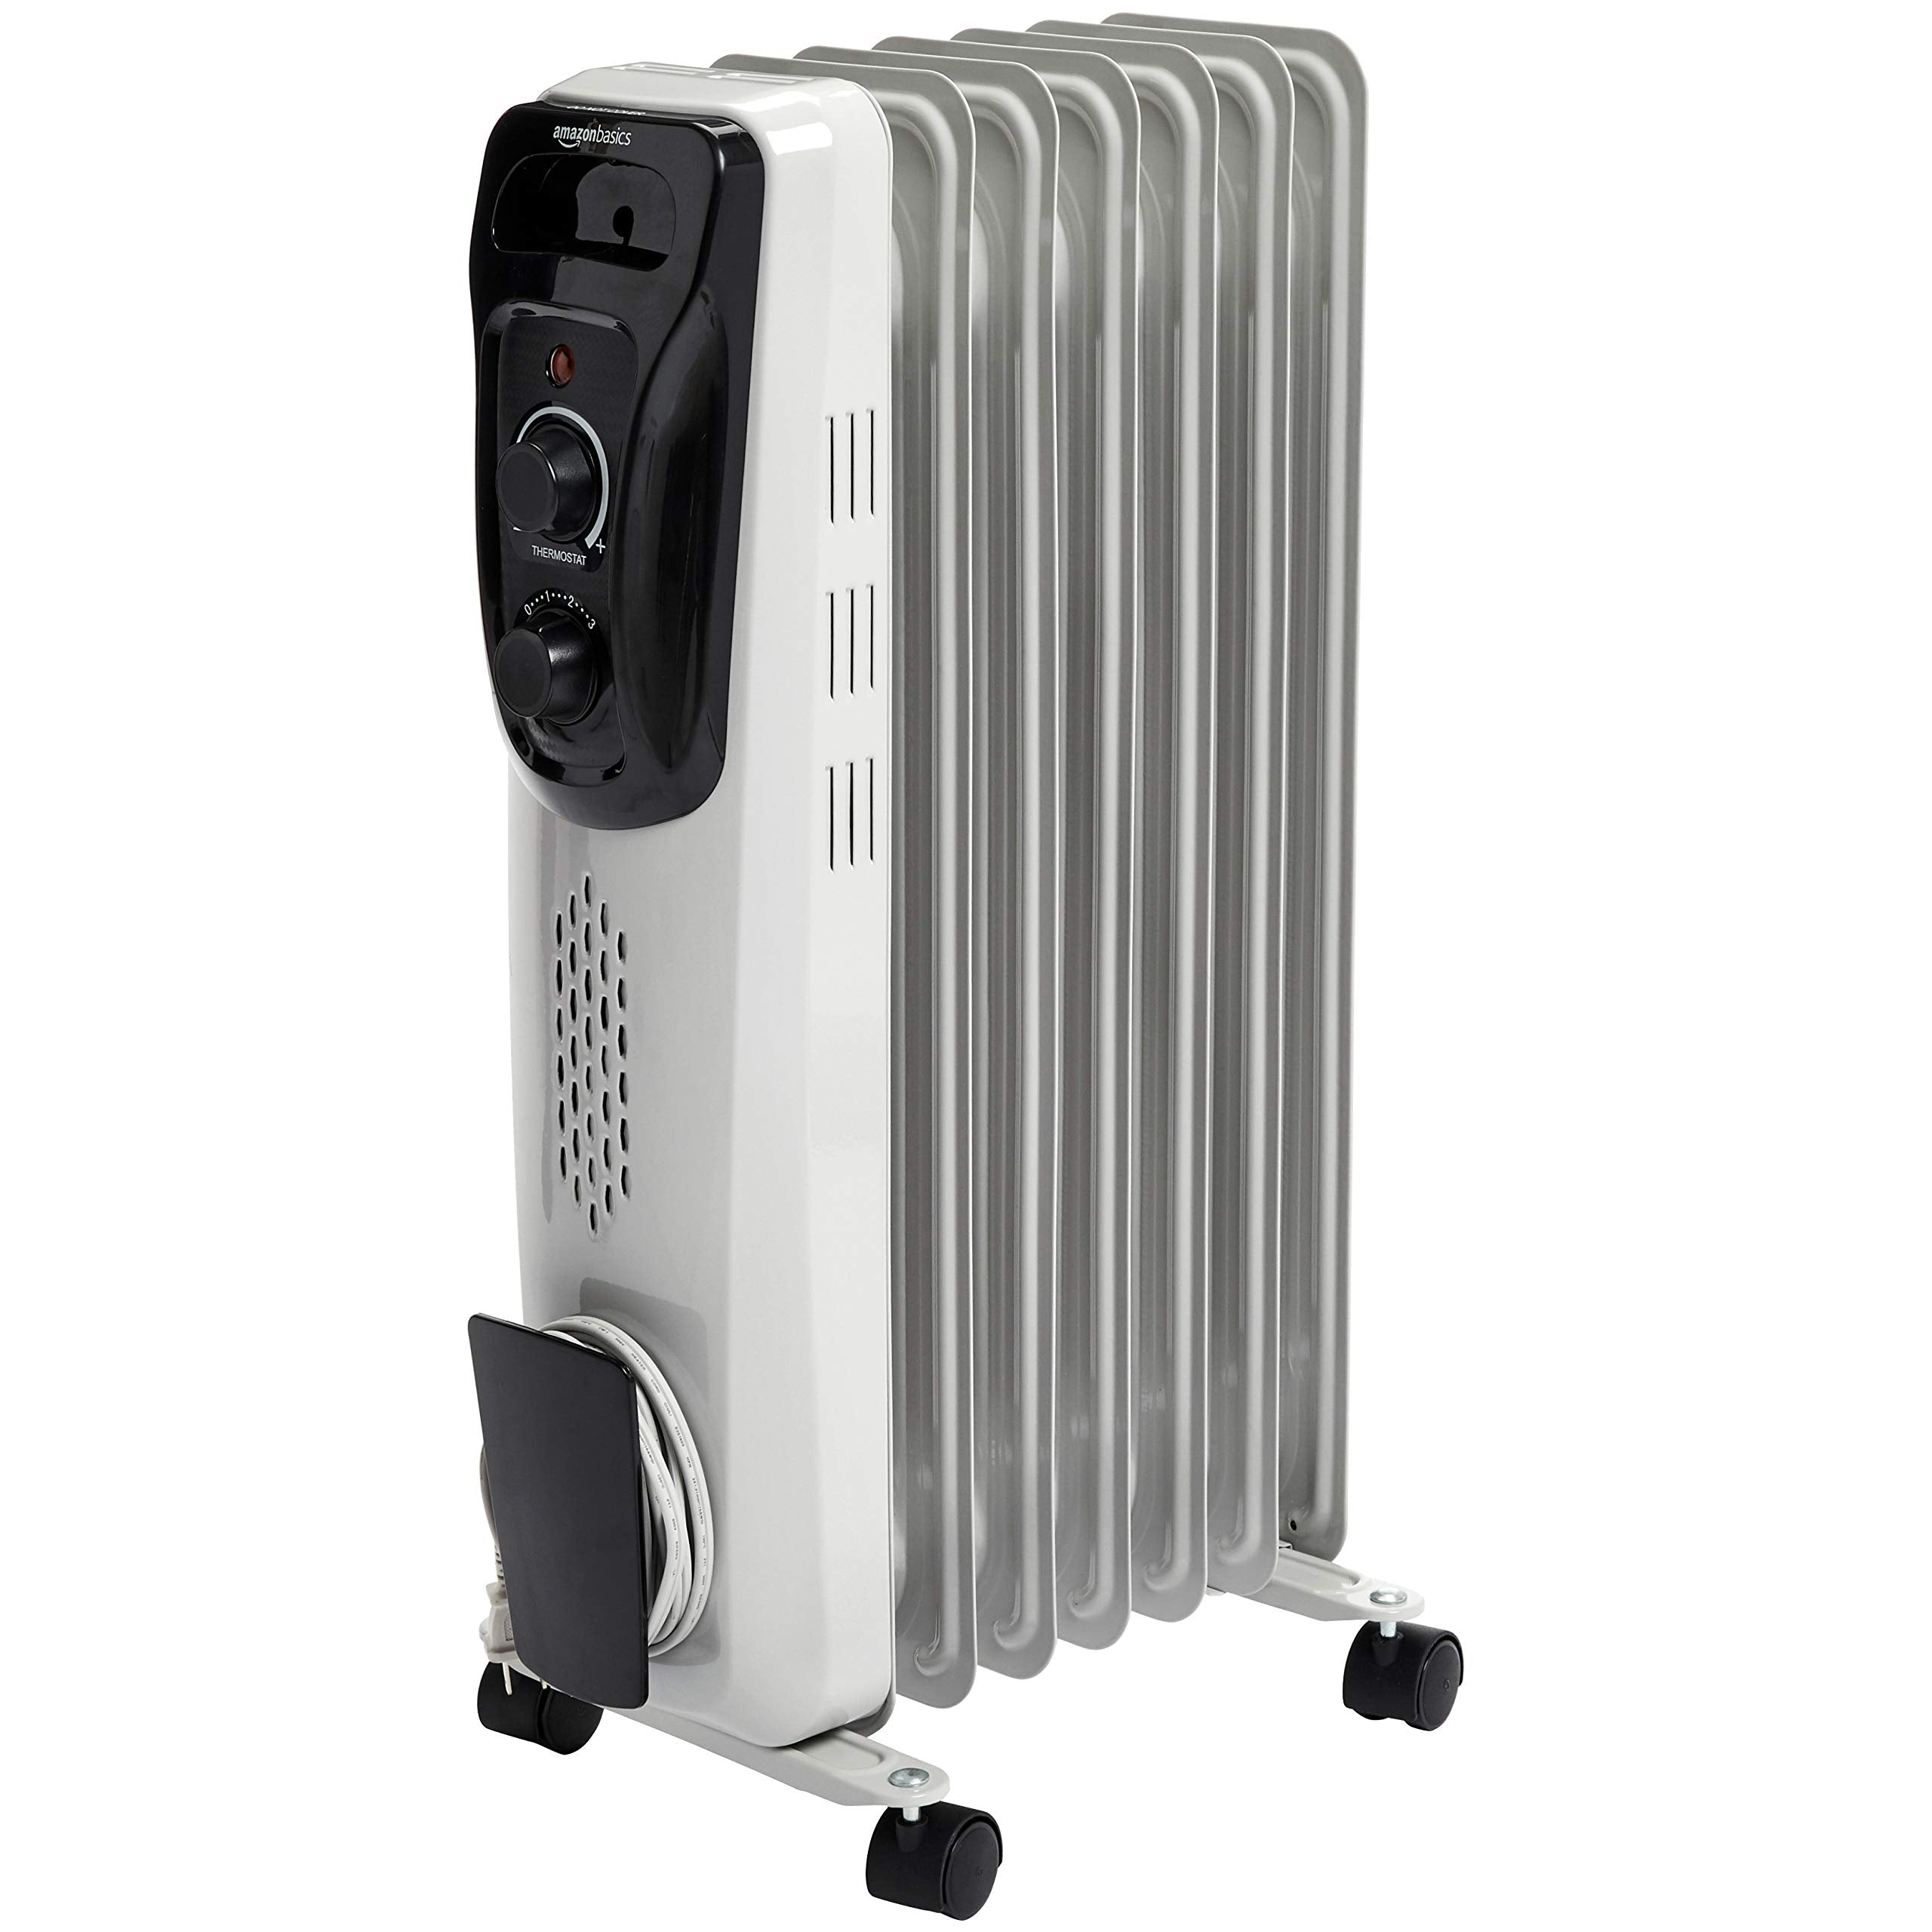 AmazonBasics Indoor Portable Radiator Heater - White